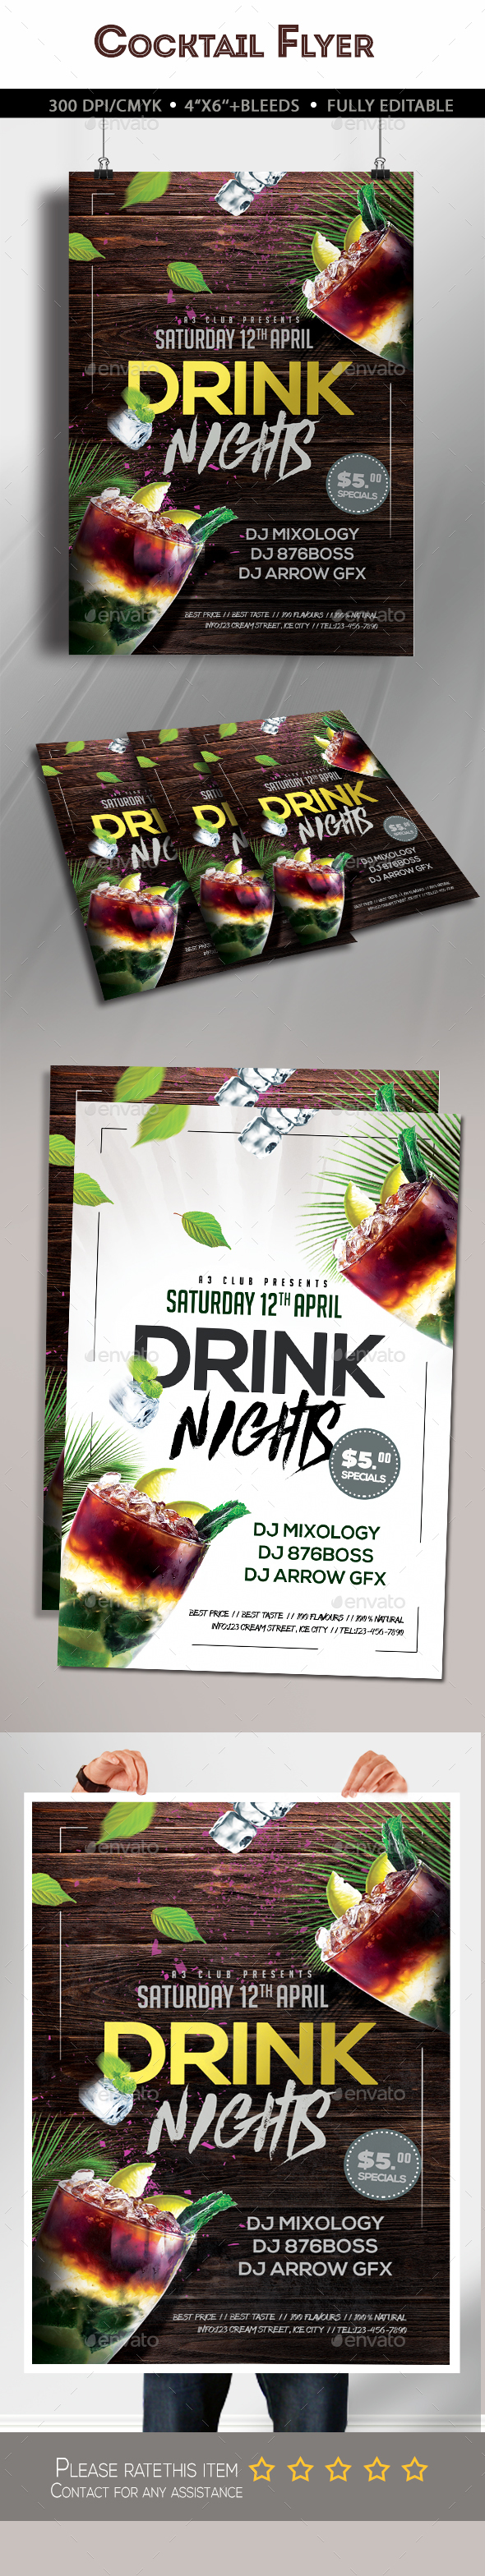 Drink Nights Flyer - Clubs & Parties Events